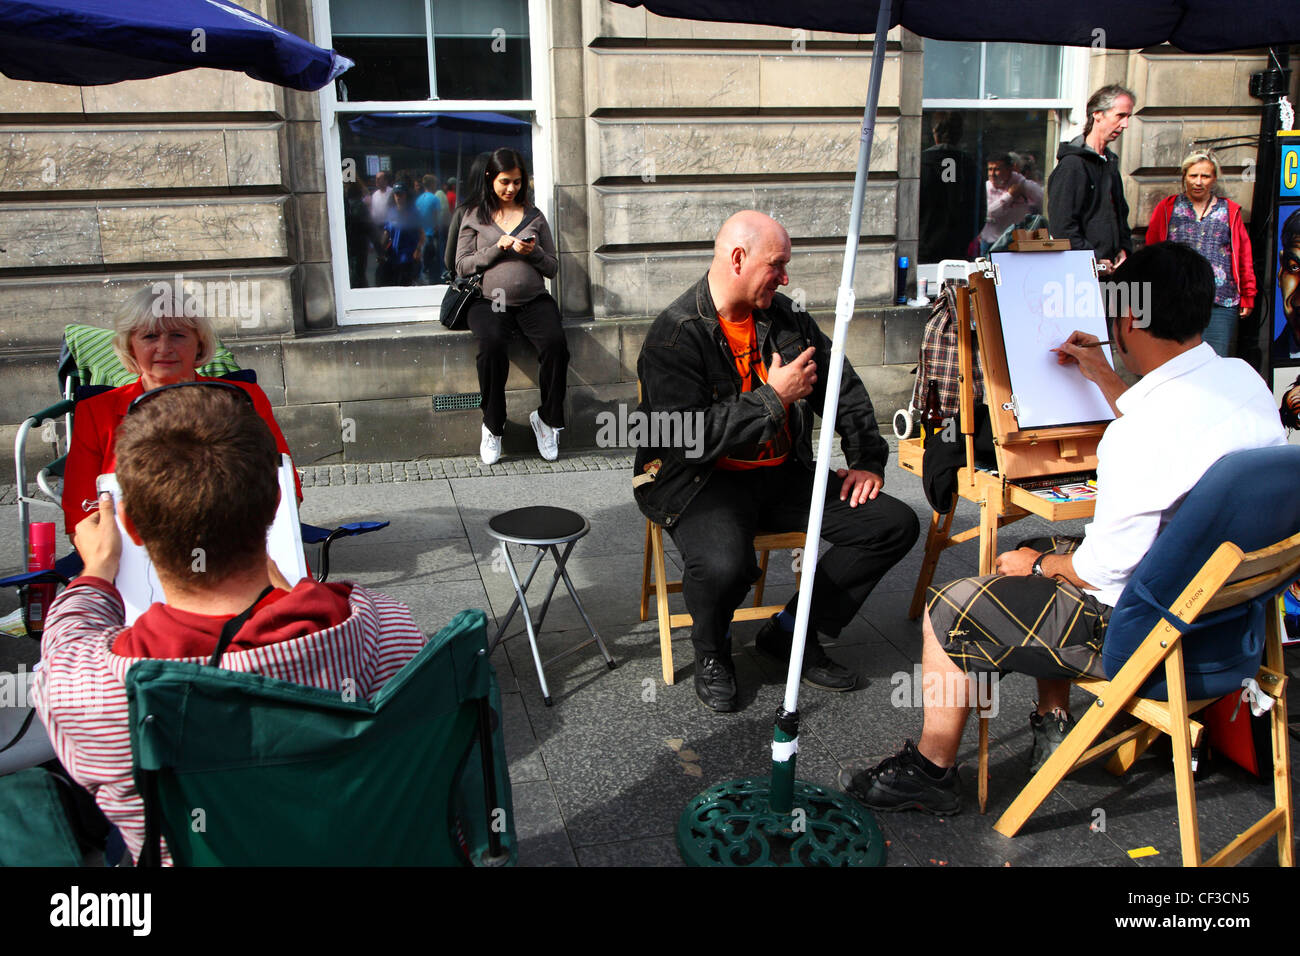 Cartoonists sketching caricatures of people on the Royal Mile. - Stock Image